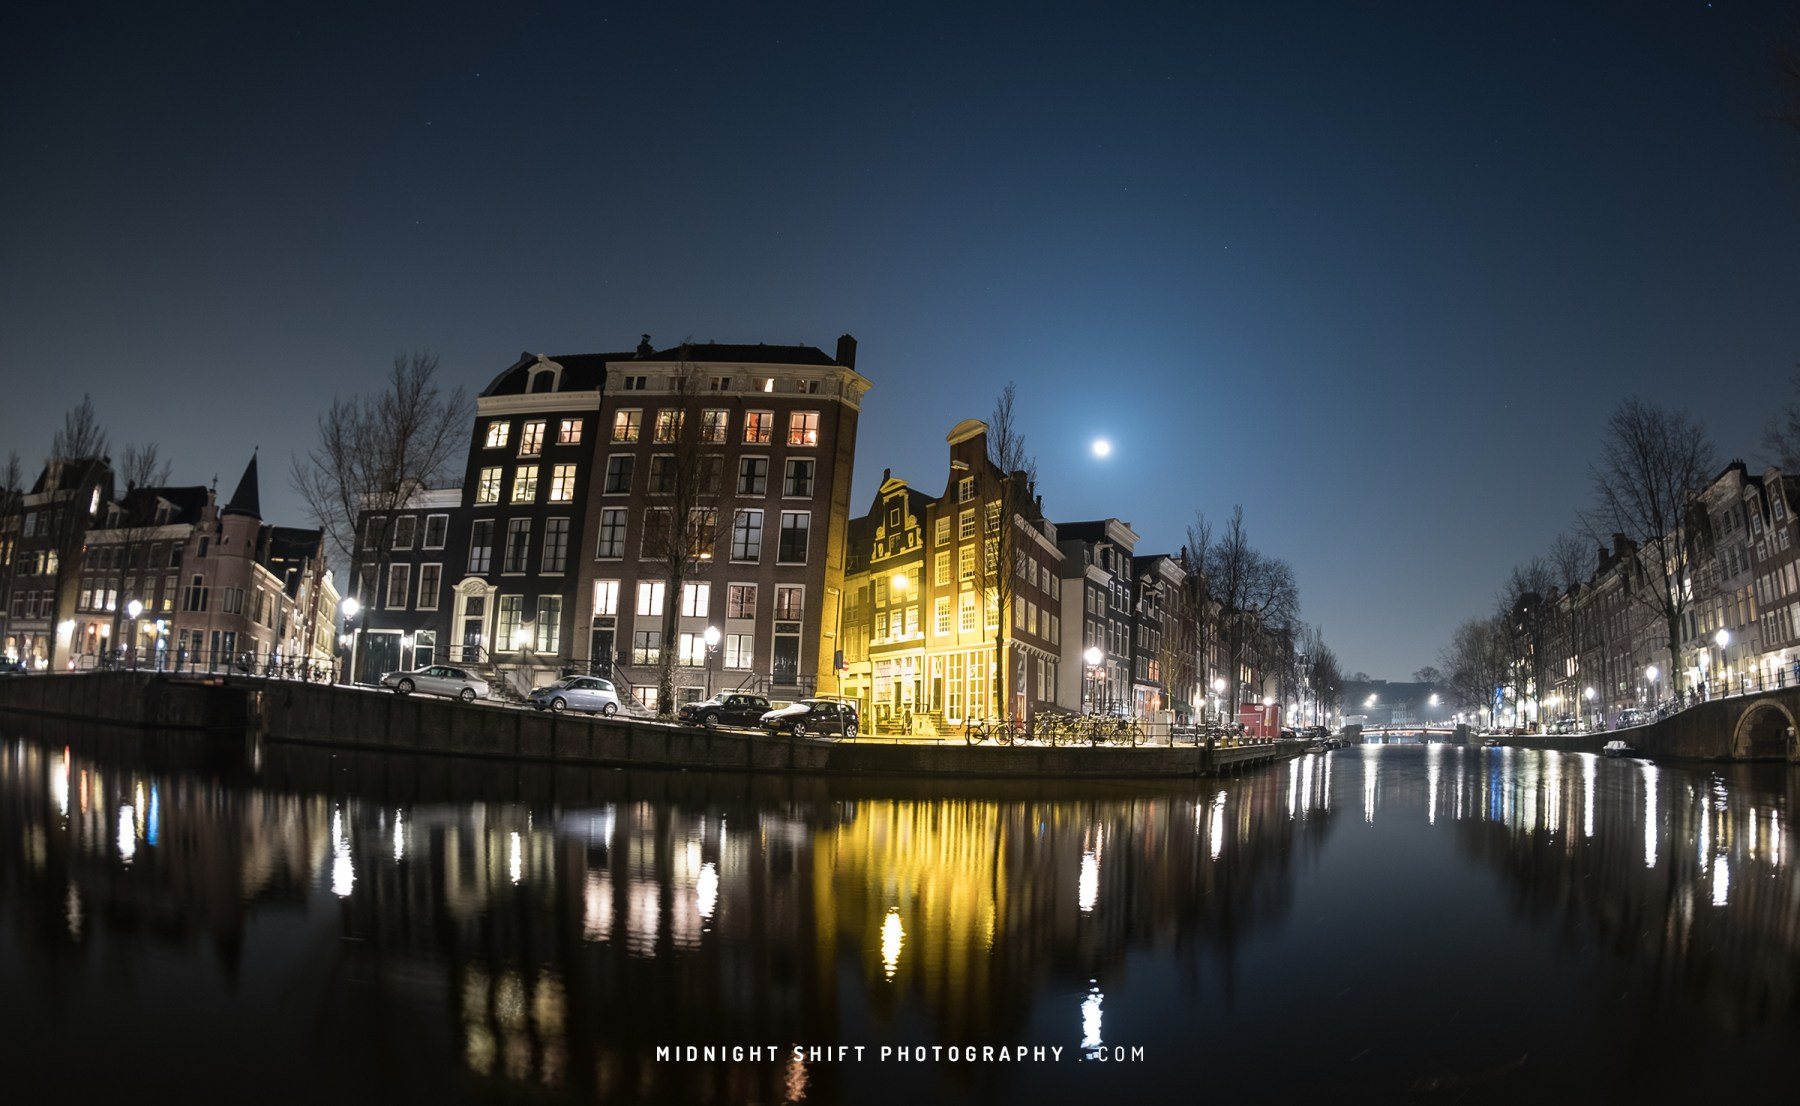 The moon rises over the city of Amsterdam